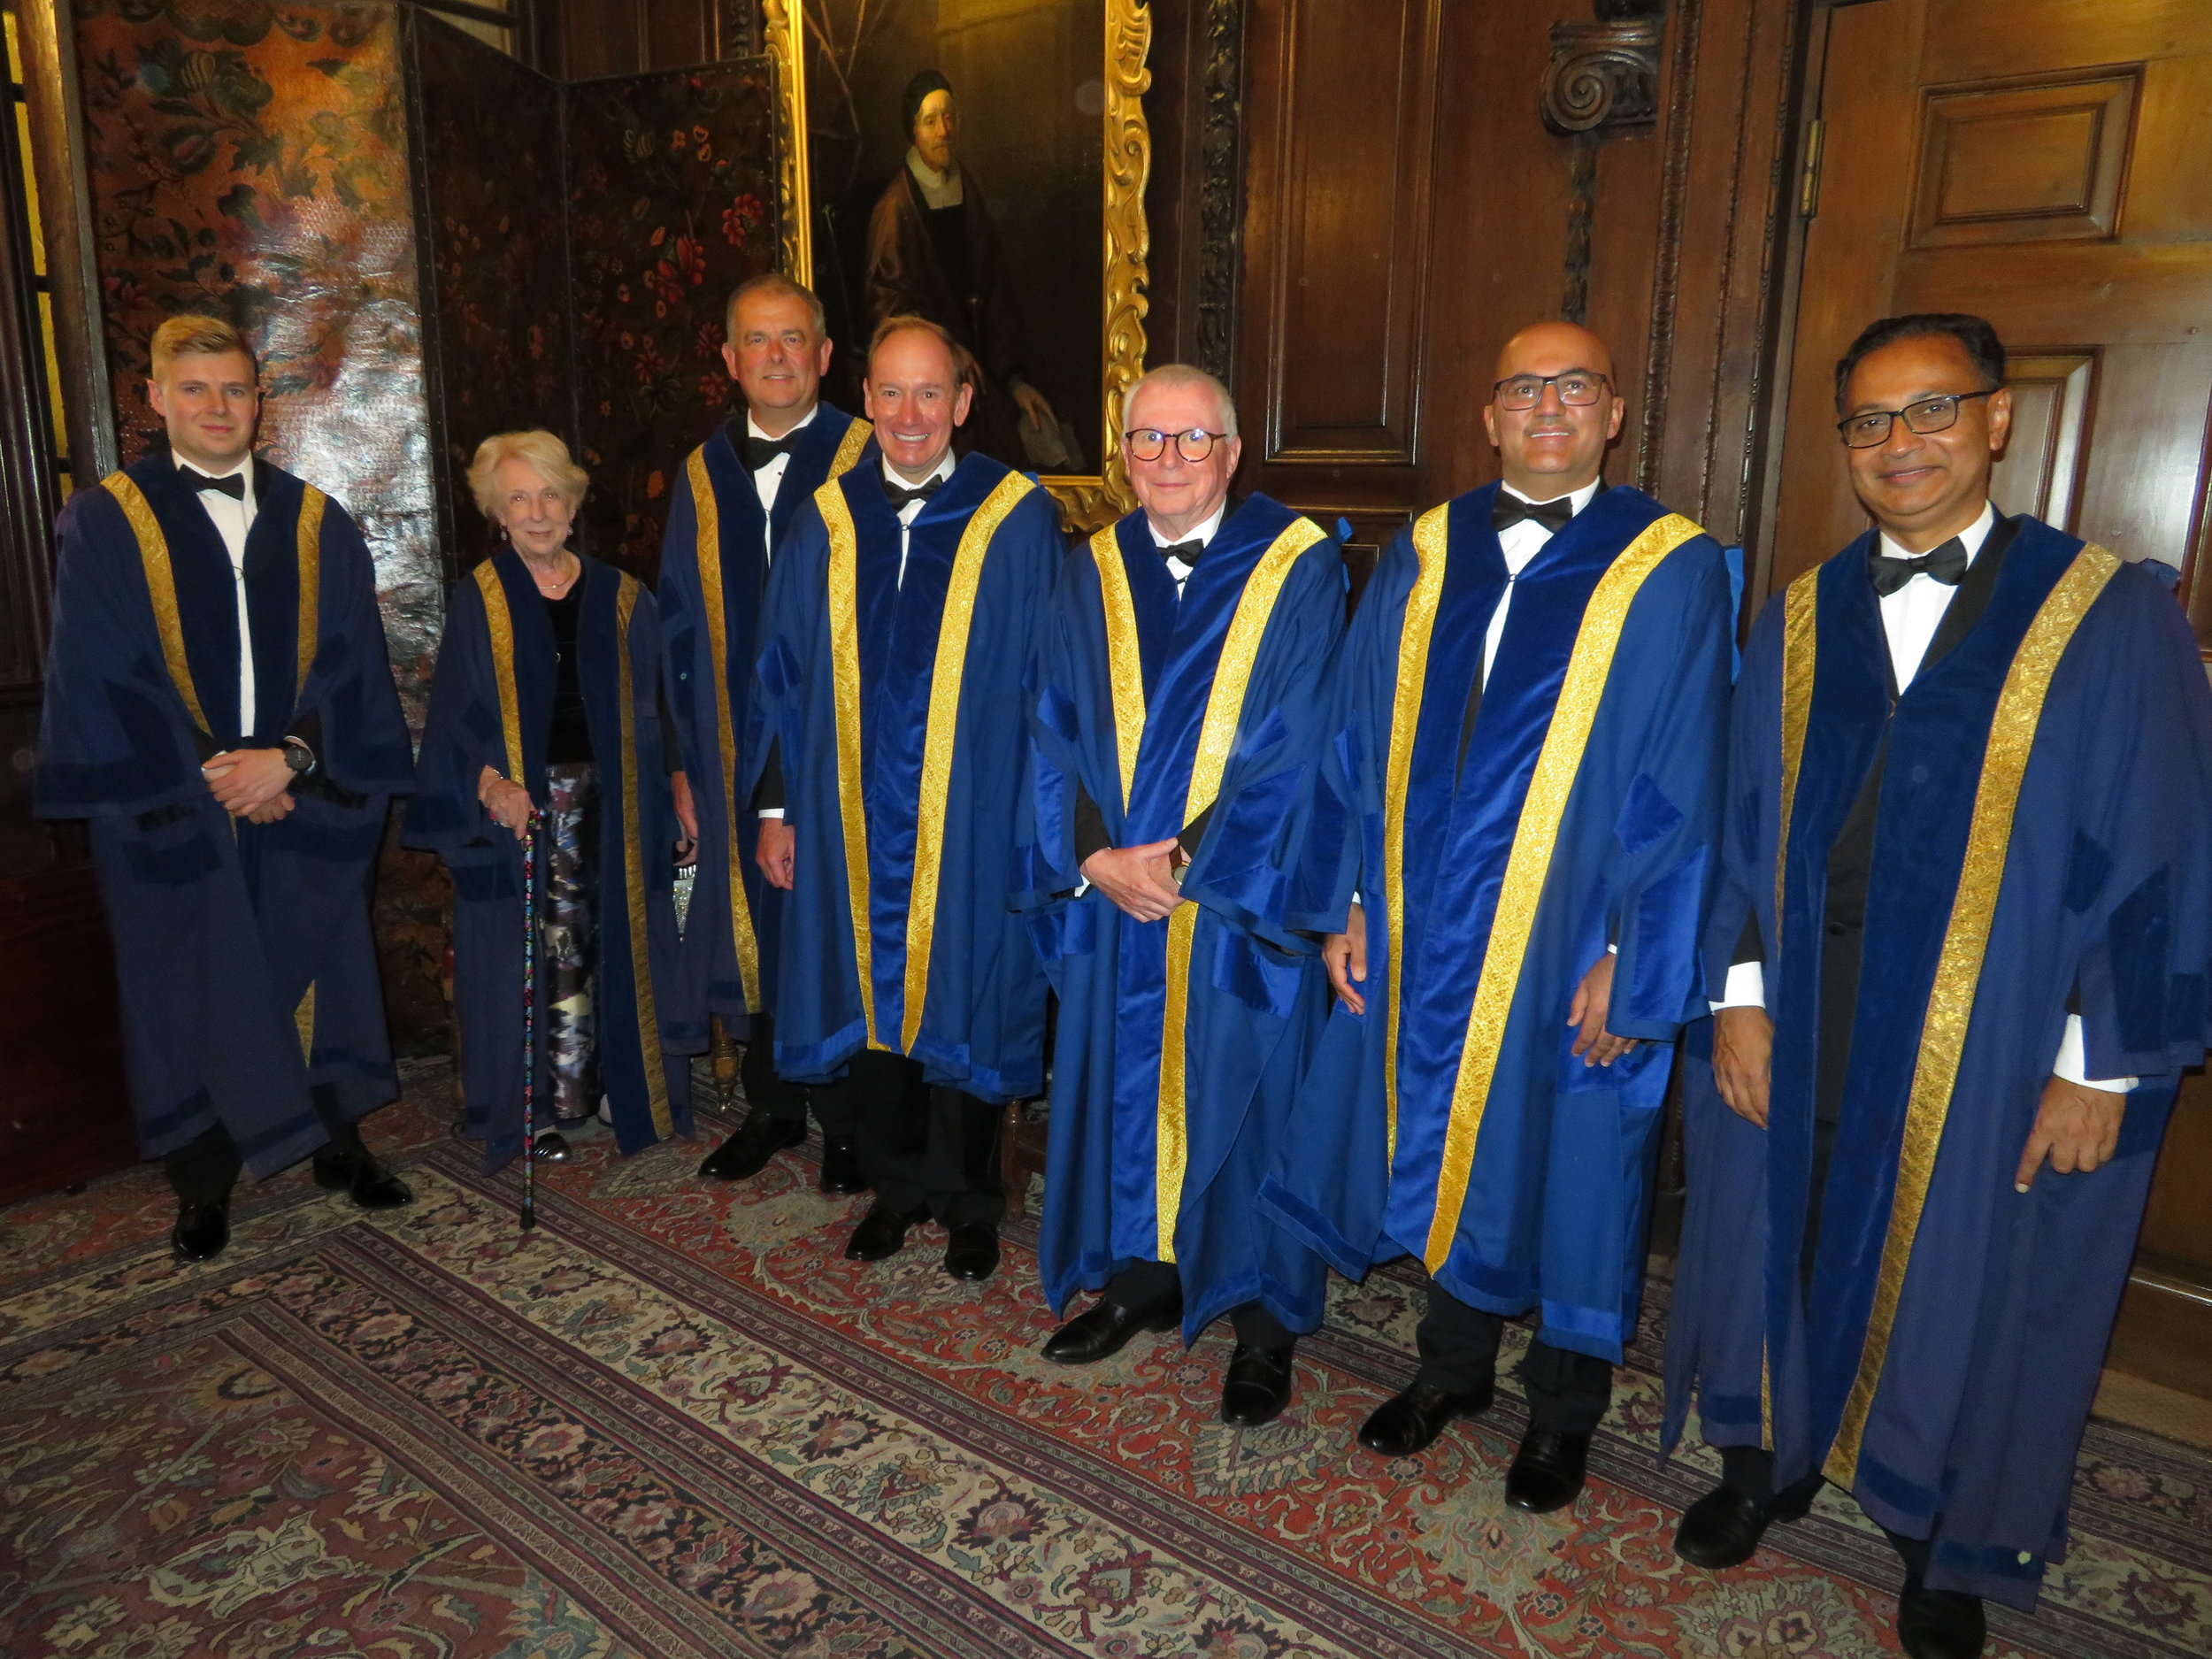 The seven new Liverymen